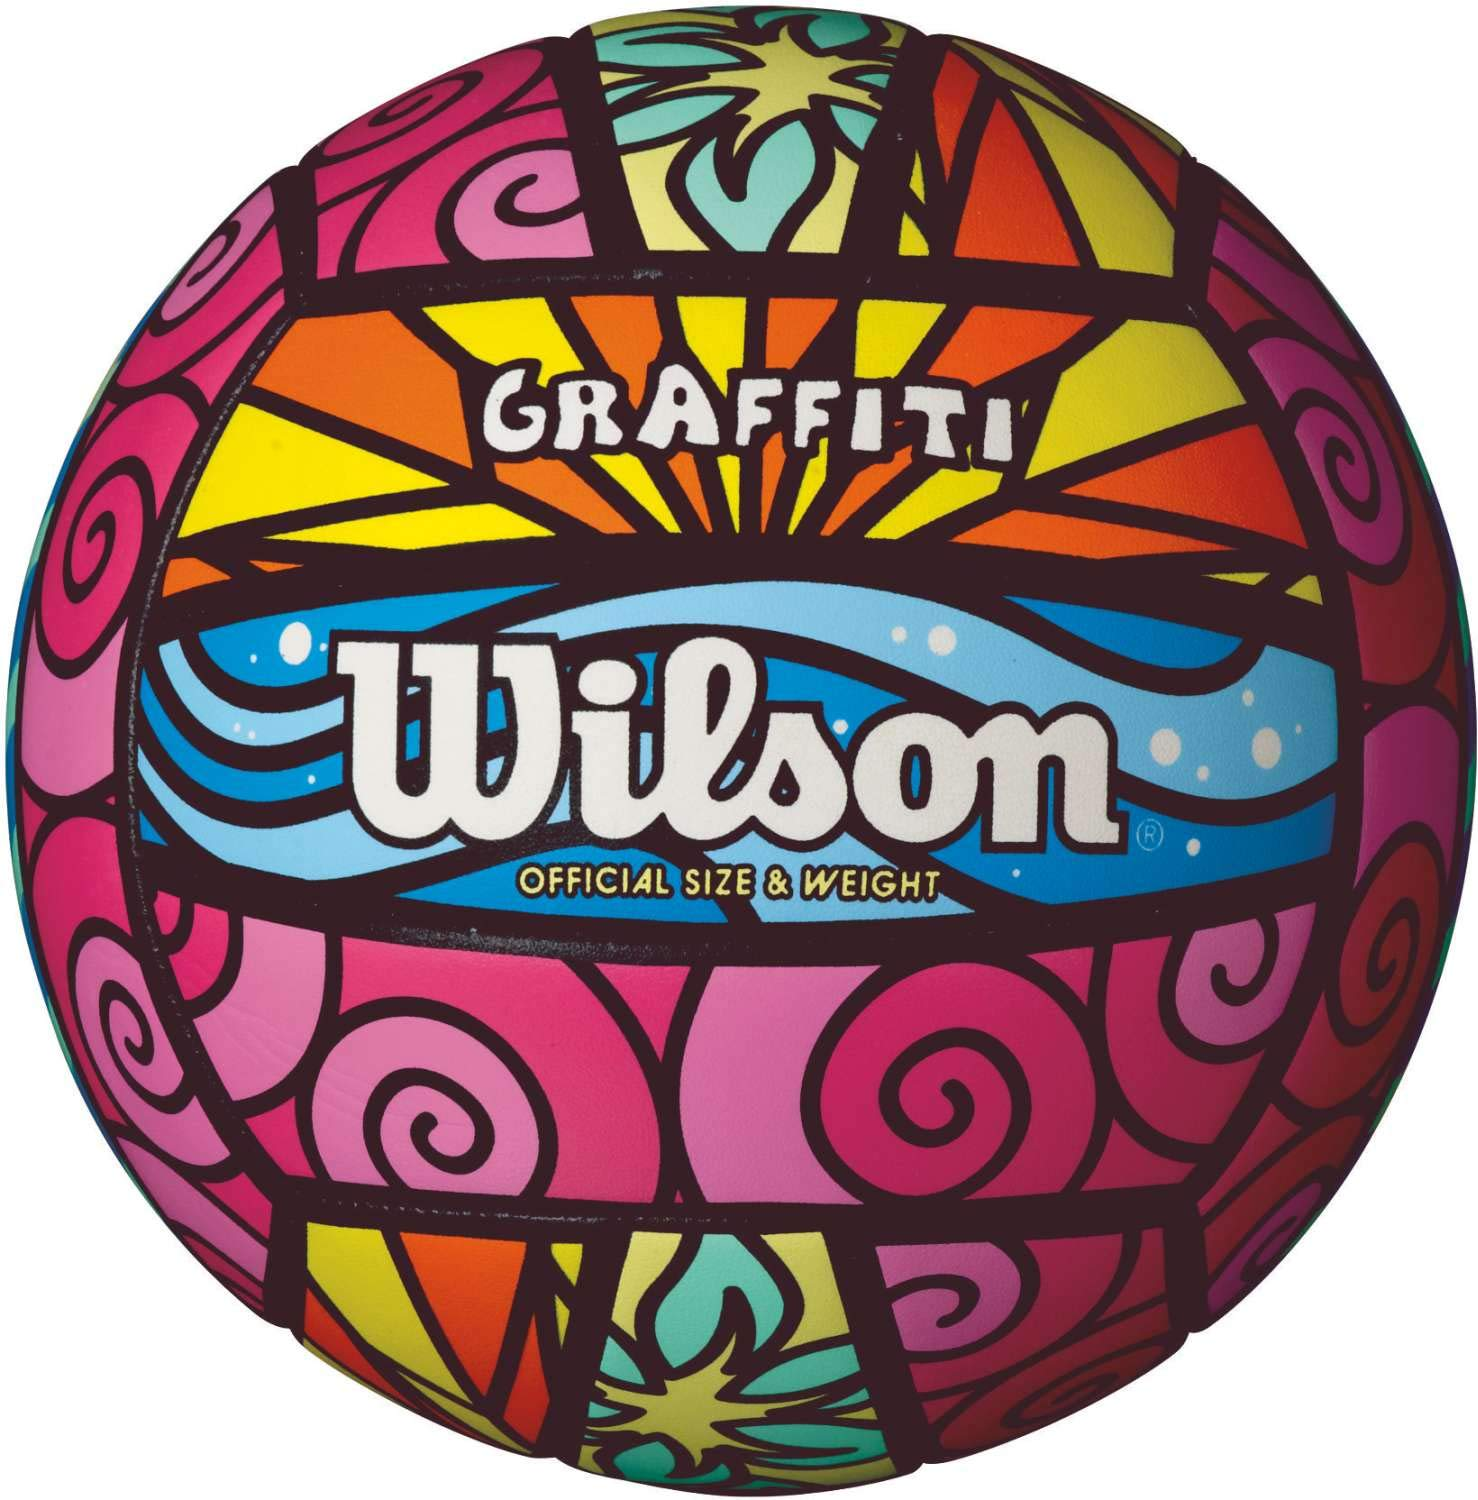 WILSON Graffiti Volley-Ball